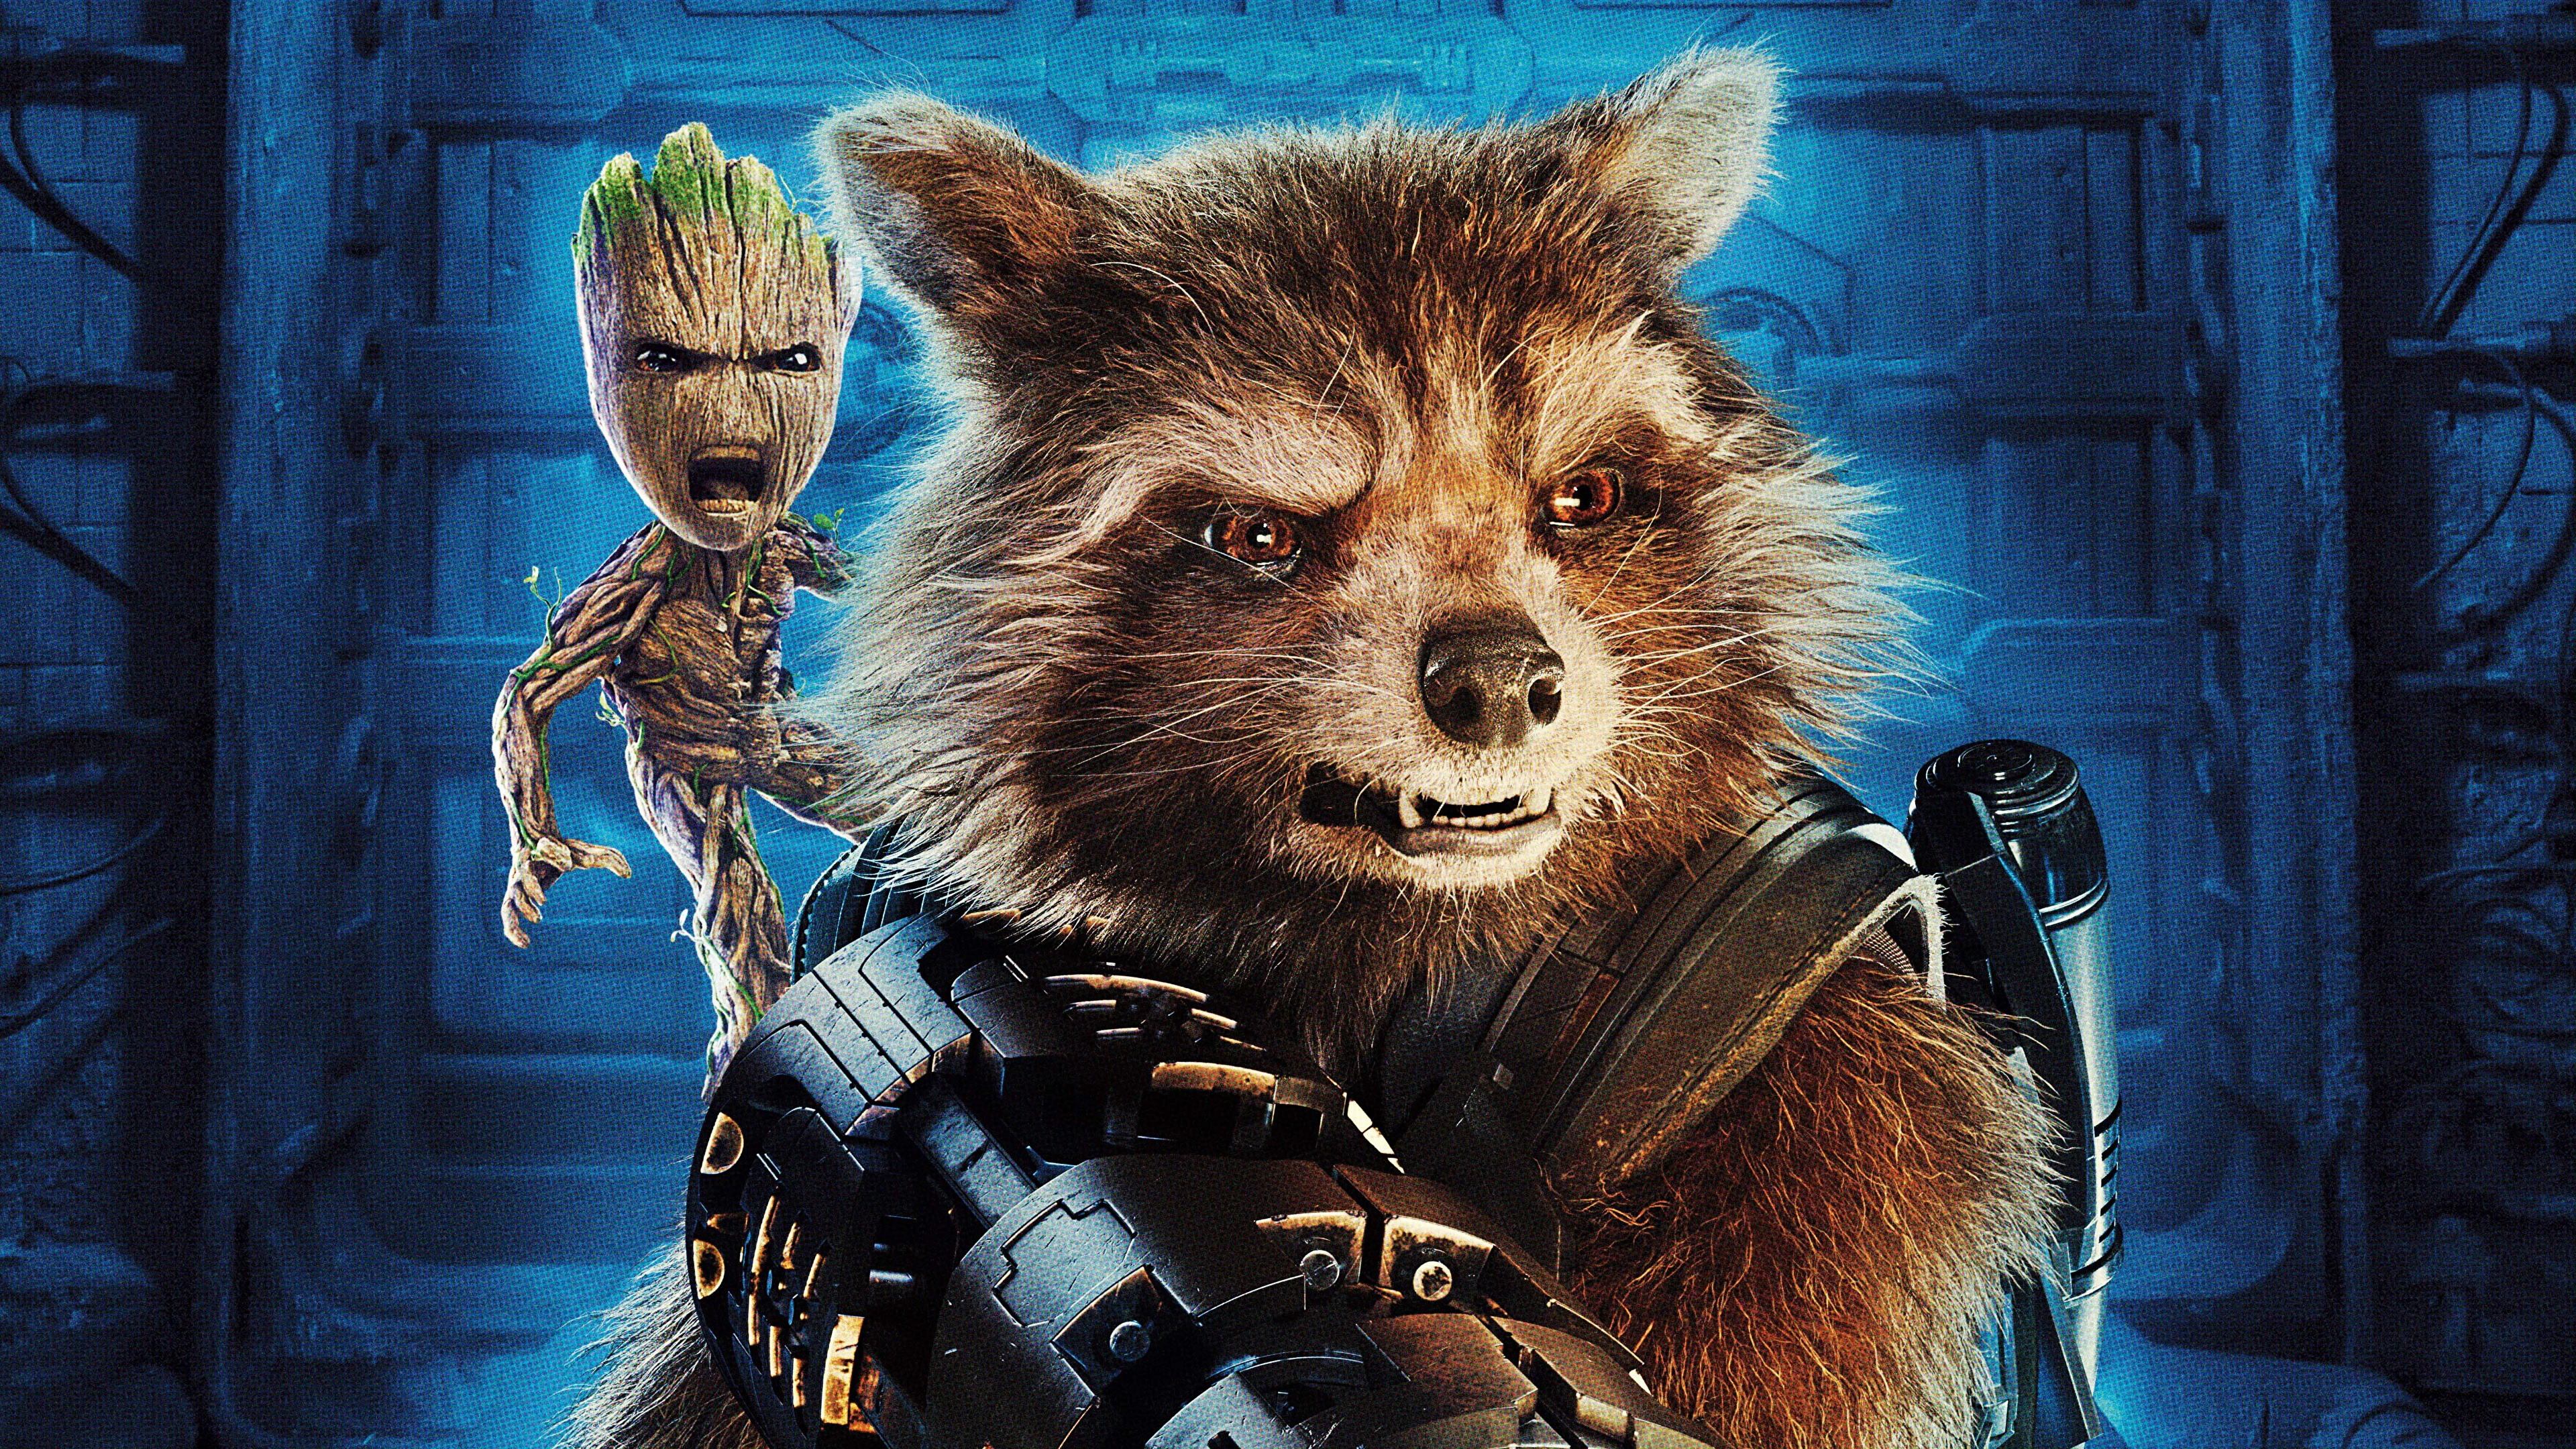 Desktop Wallpapers Guardians Of The Galaxy Vol 2 Raccoons 3840x2160